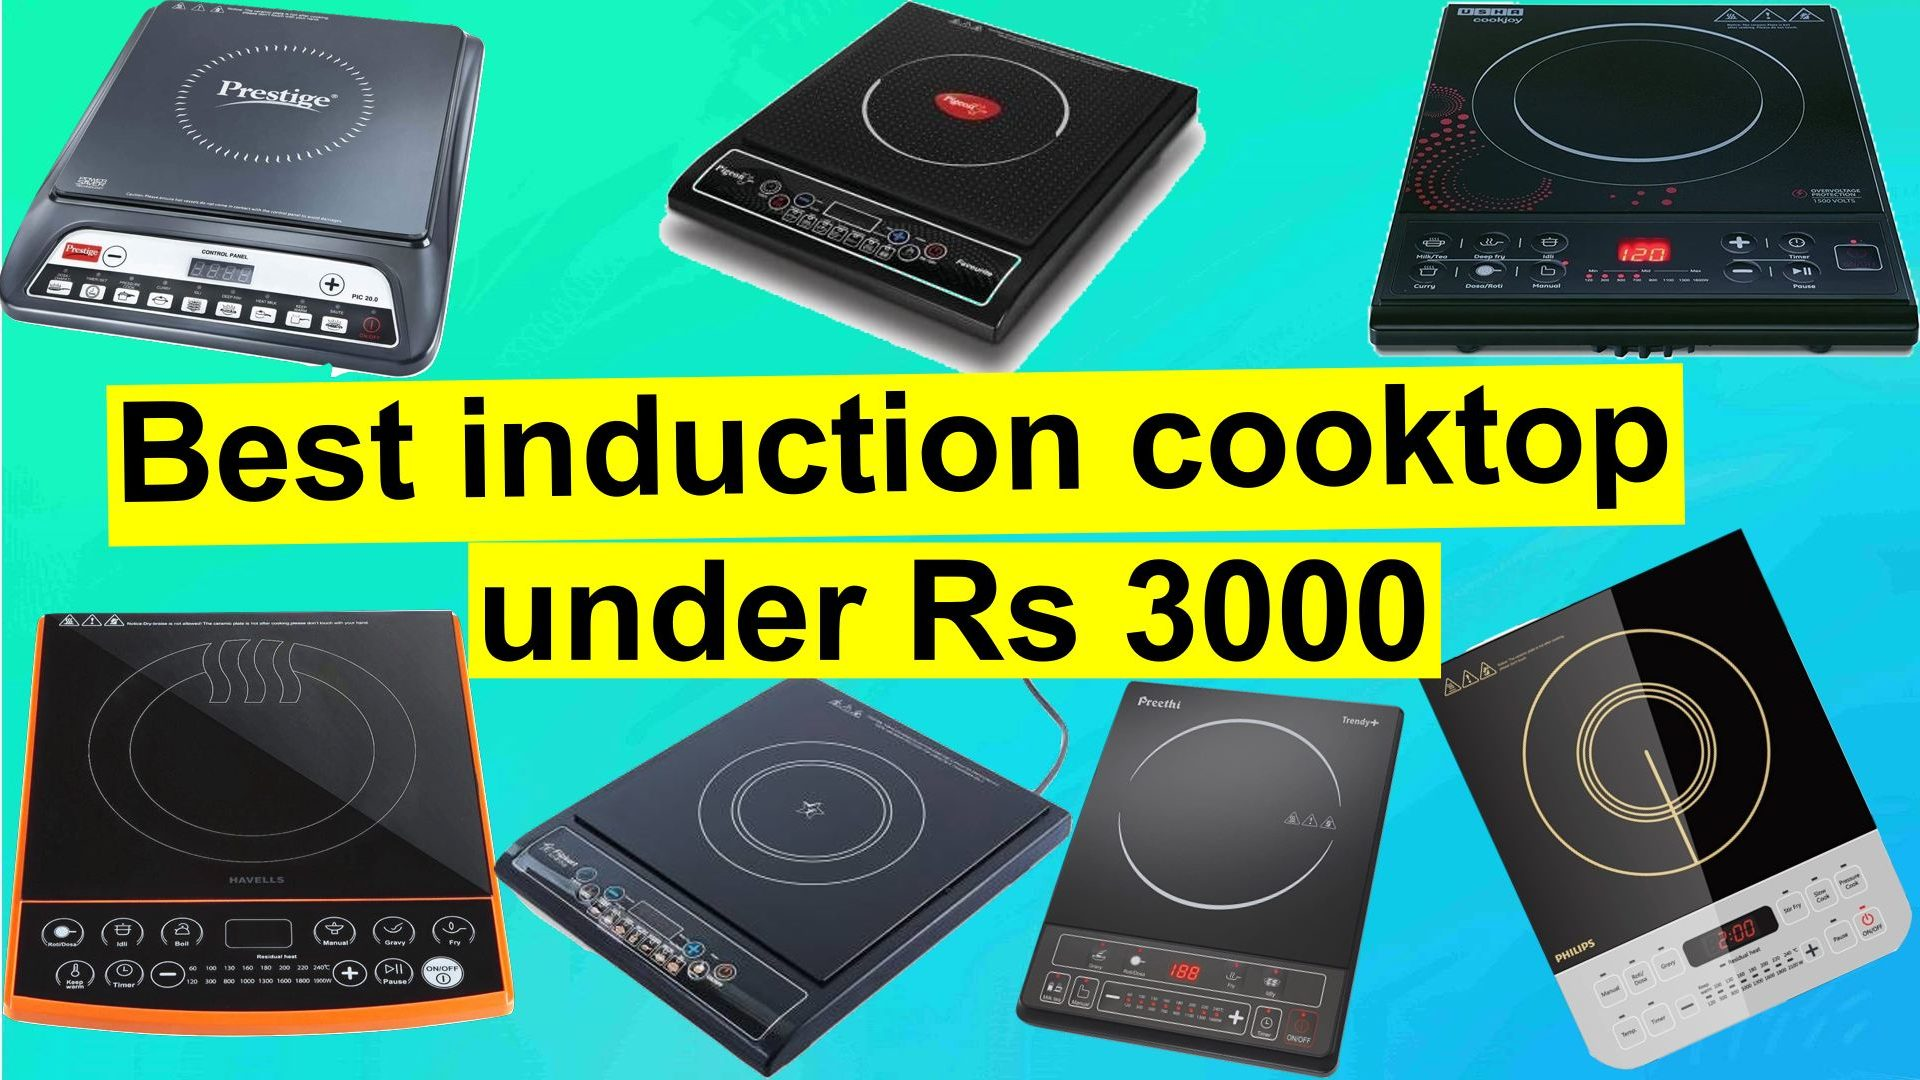 Best induction cooktop under Rs 3000